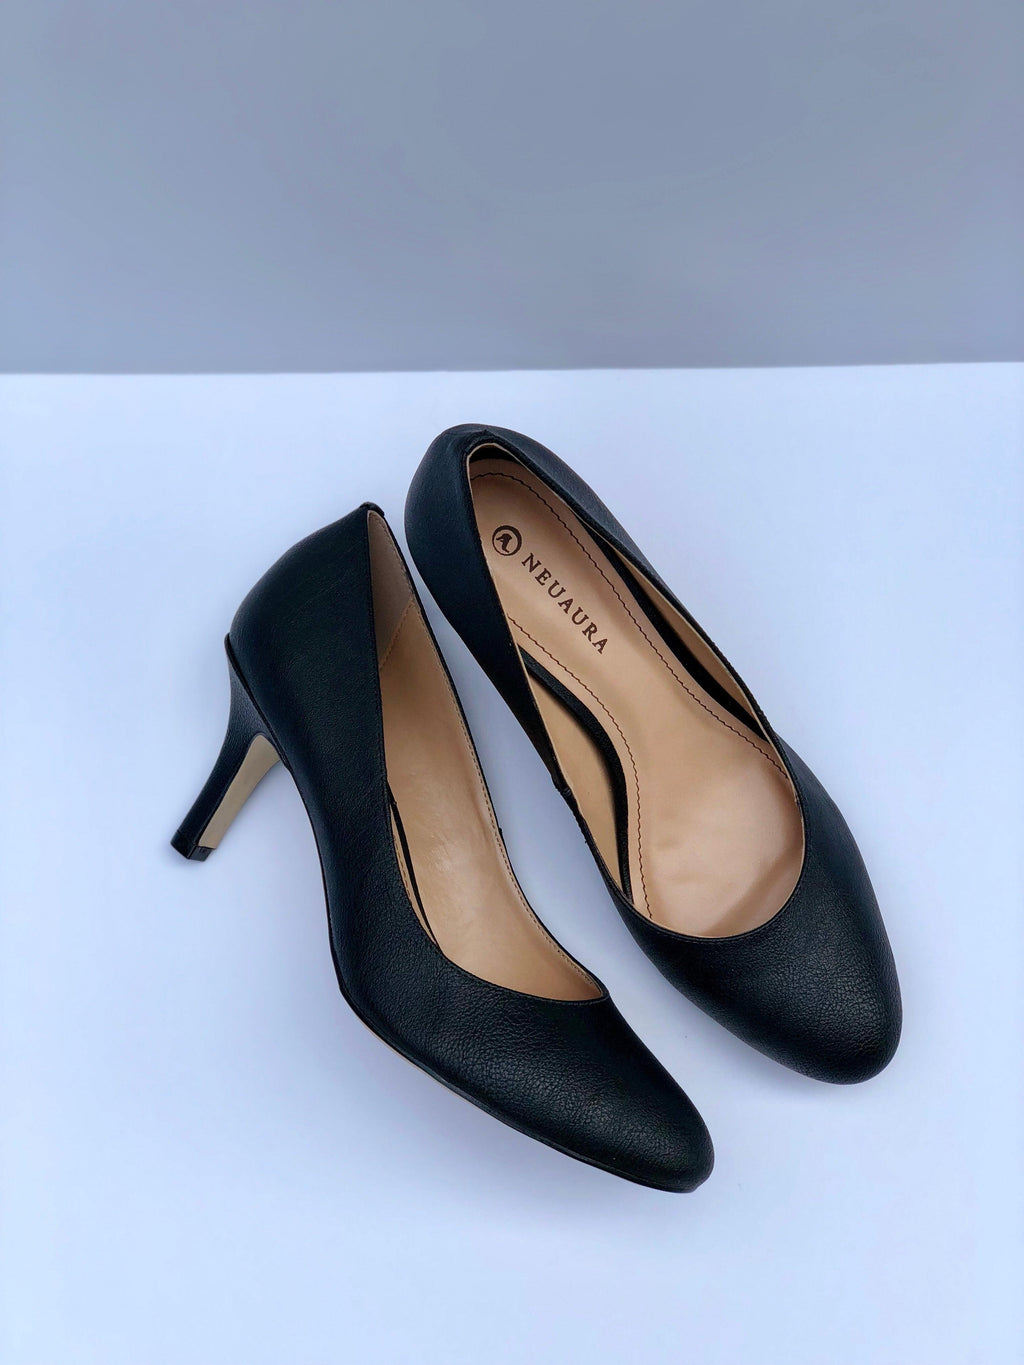 Black Neuaura Pumps - My Royal Closet